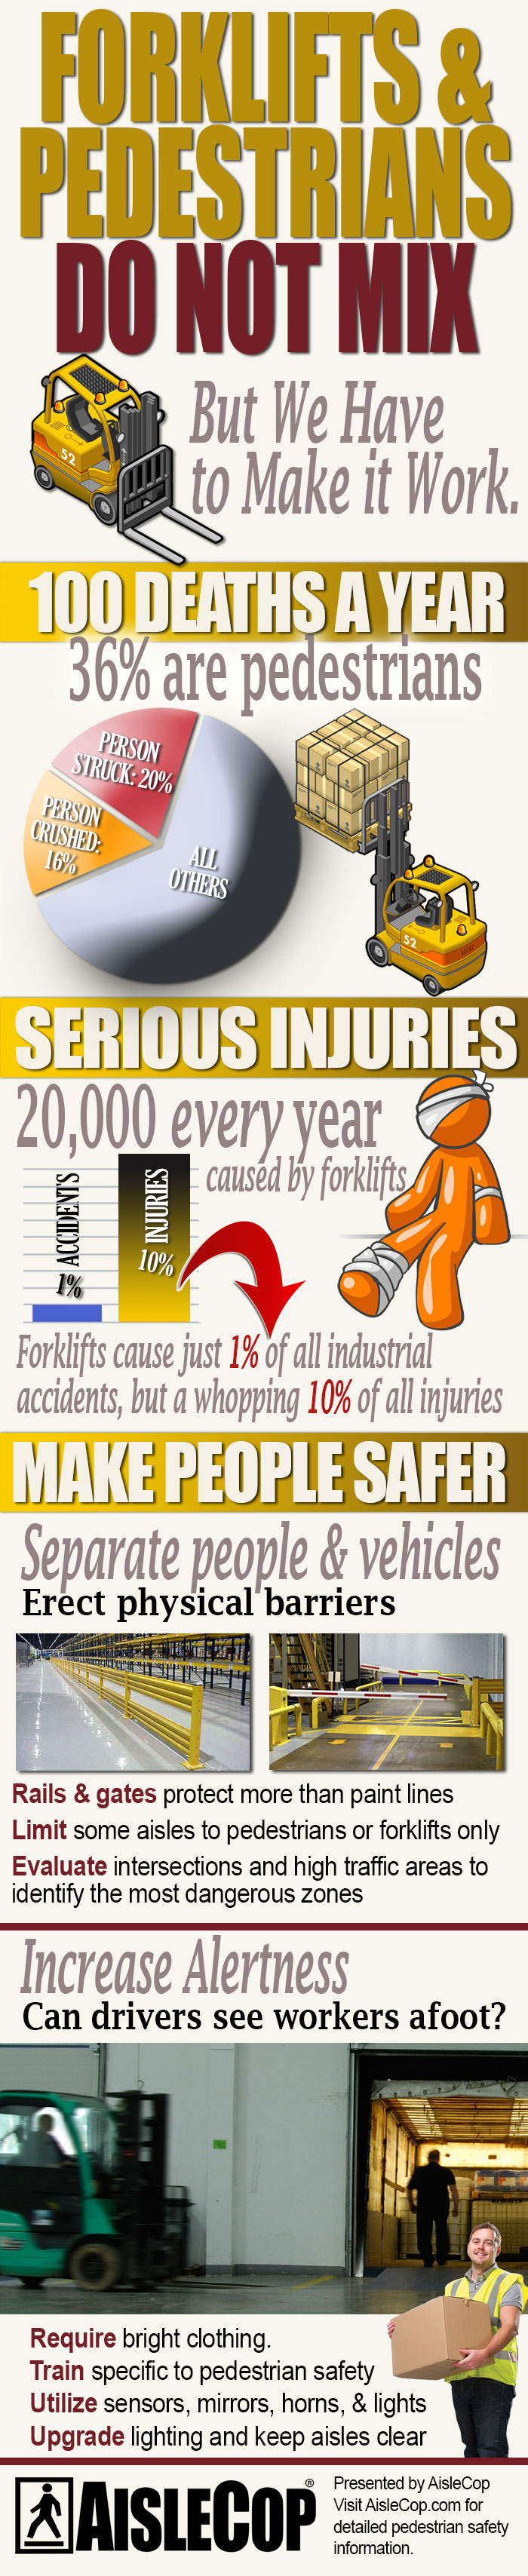 Forklift Safety Infographic Forklifts and Pedestrians Do